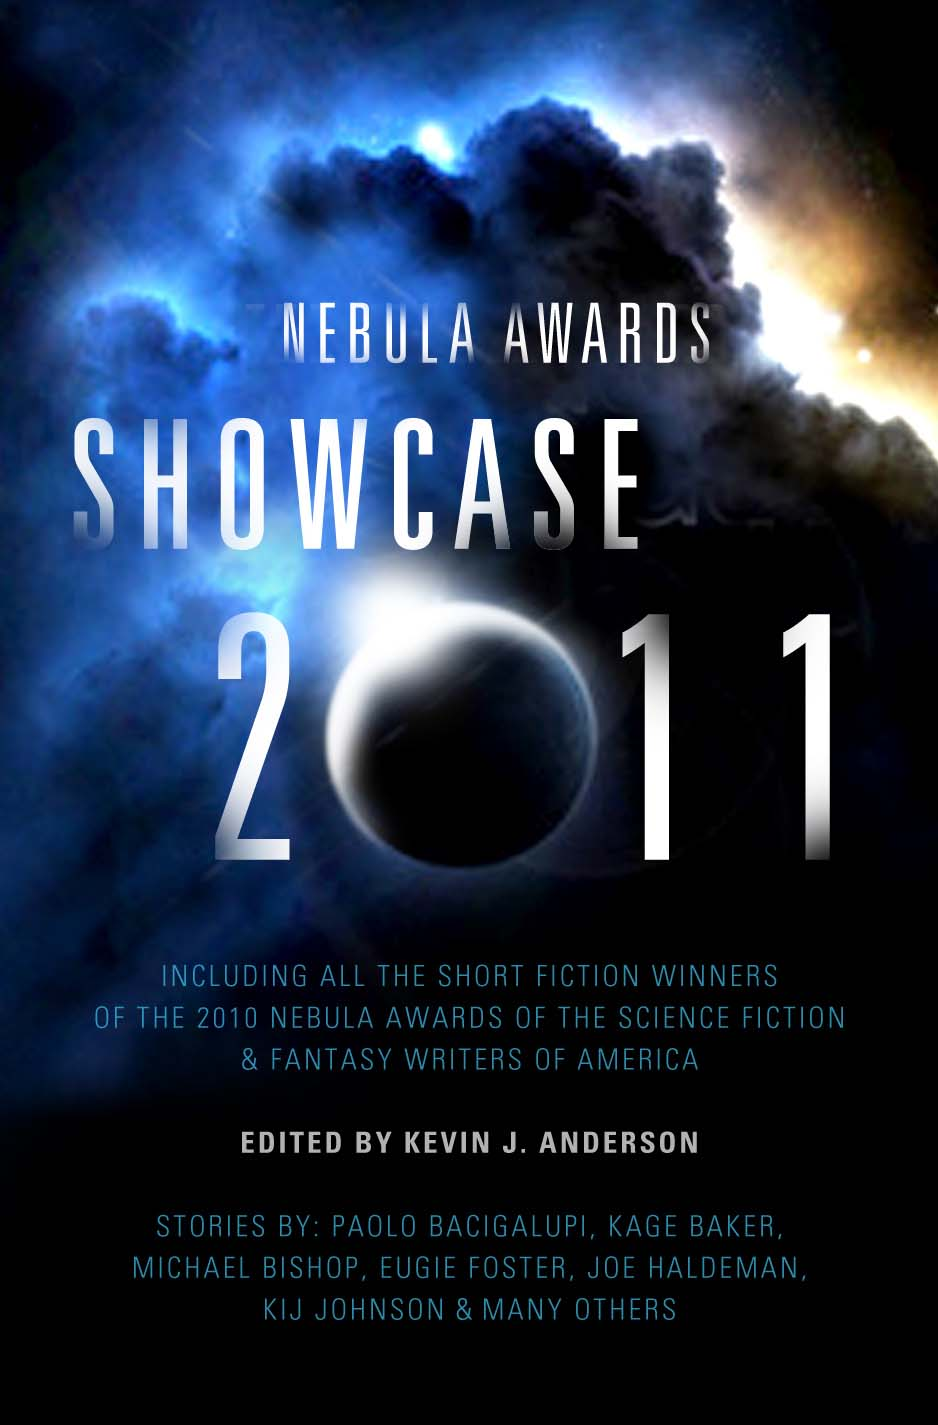 2011 Nebula Awards Showcase anthology cover